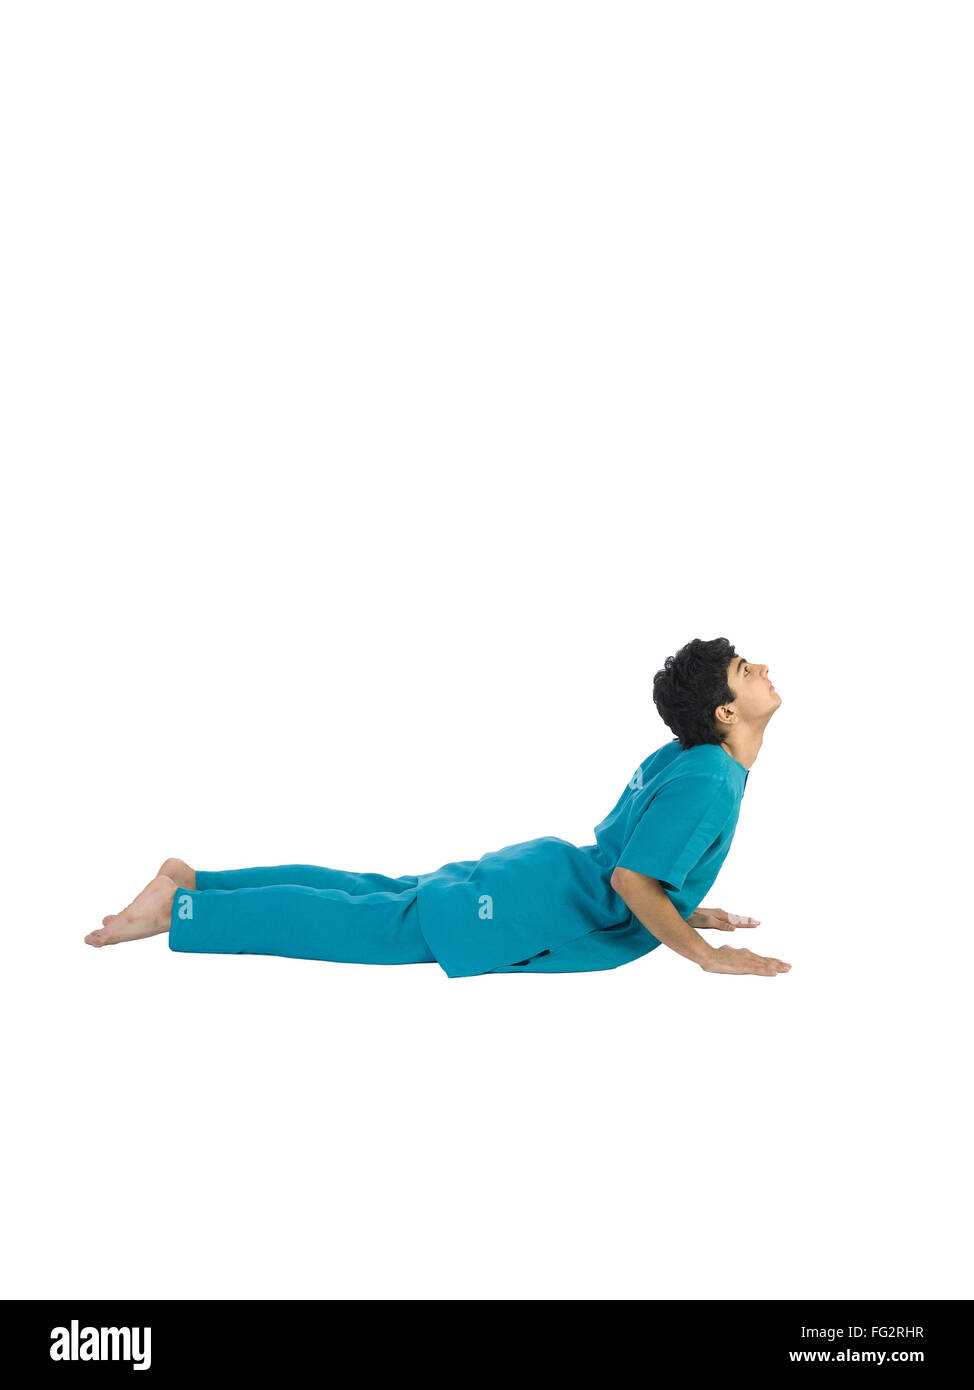 Boy practicing asana MR#779I - Stock Image